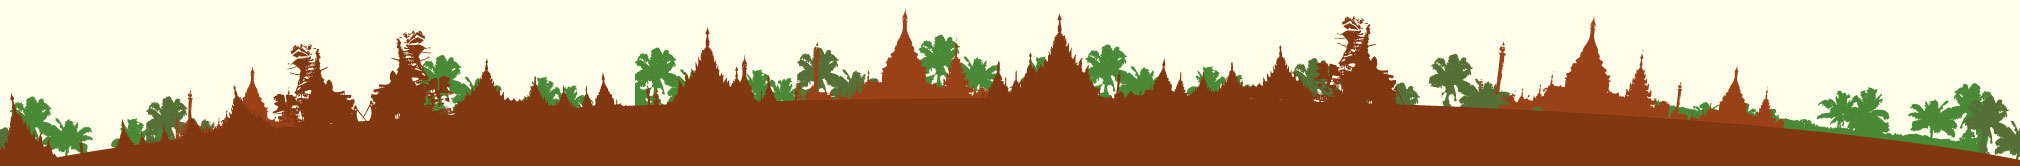 A Landscape view of Pagodas and Palm trees from Myanmar in vector art